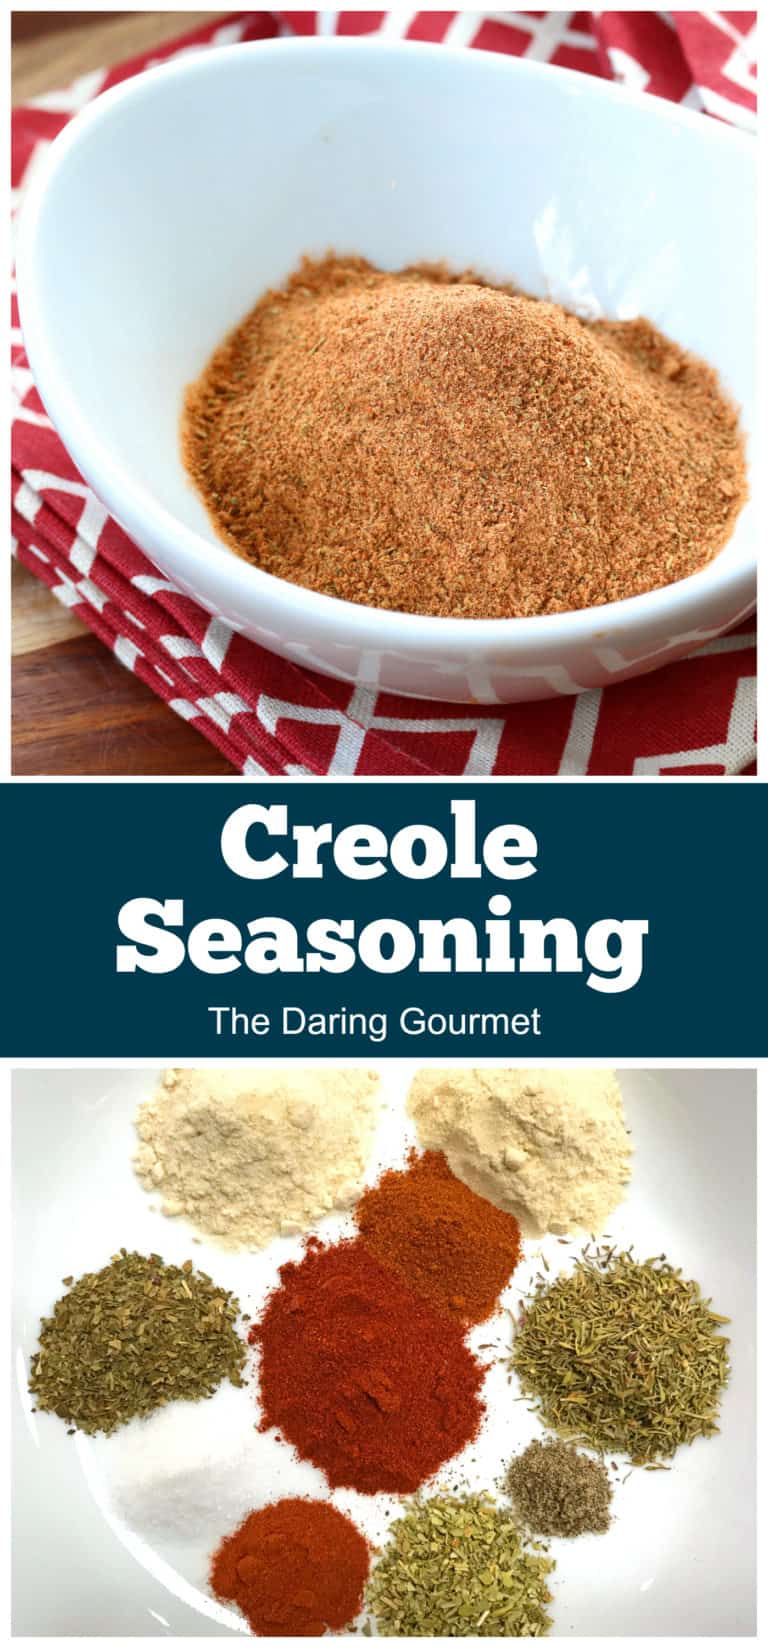 What's Up In Creole : what's, creole, Creole, Seasoning, Recipe, Daring, Gourmet